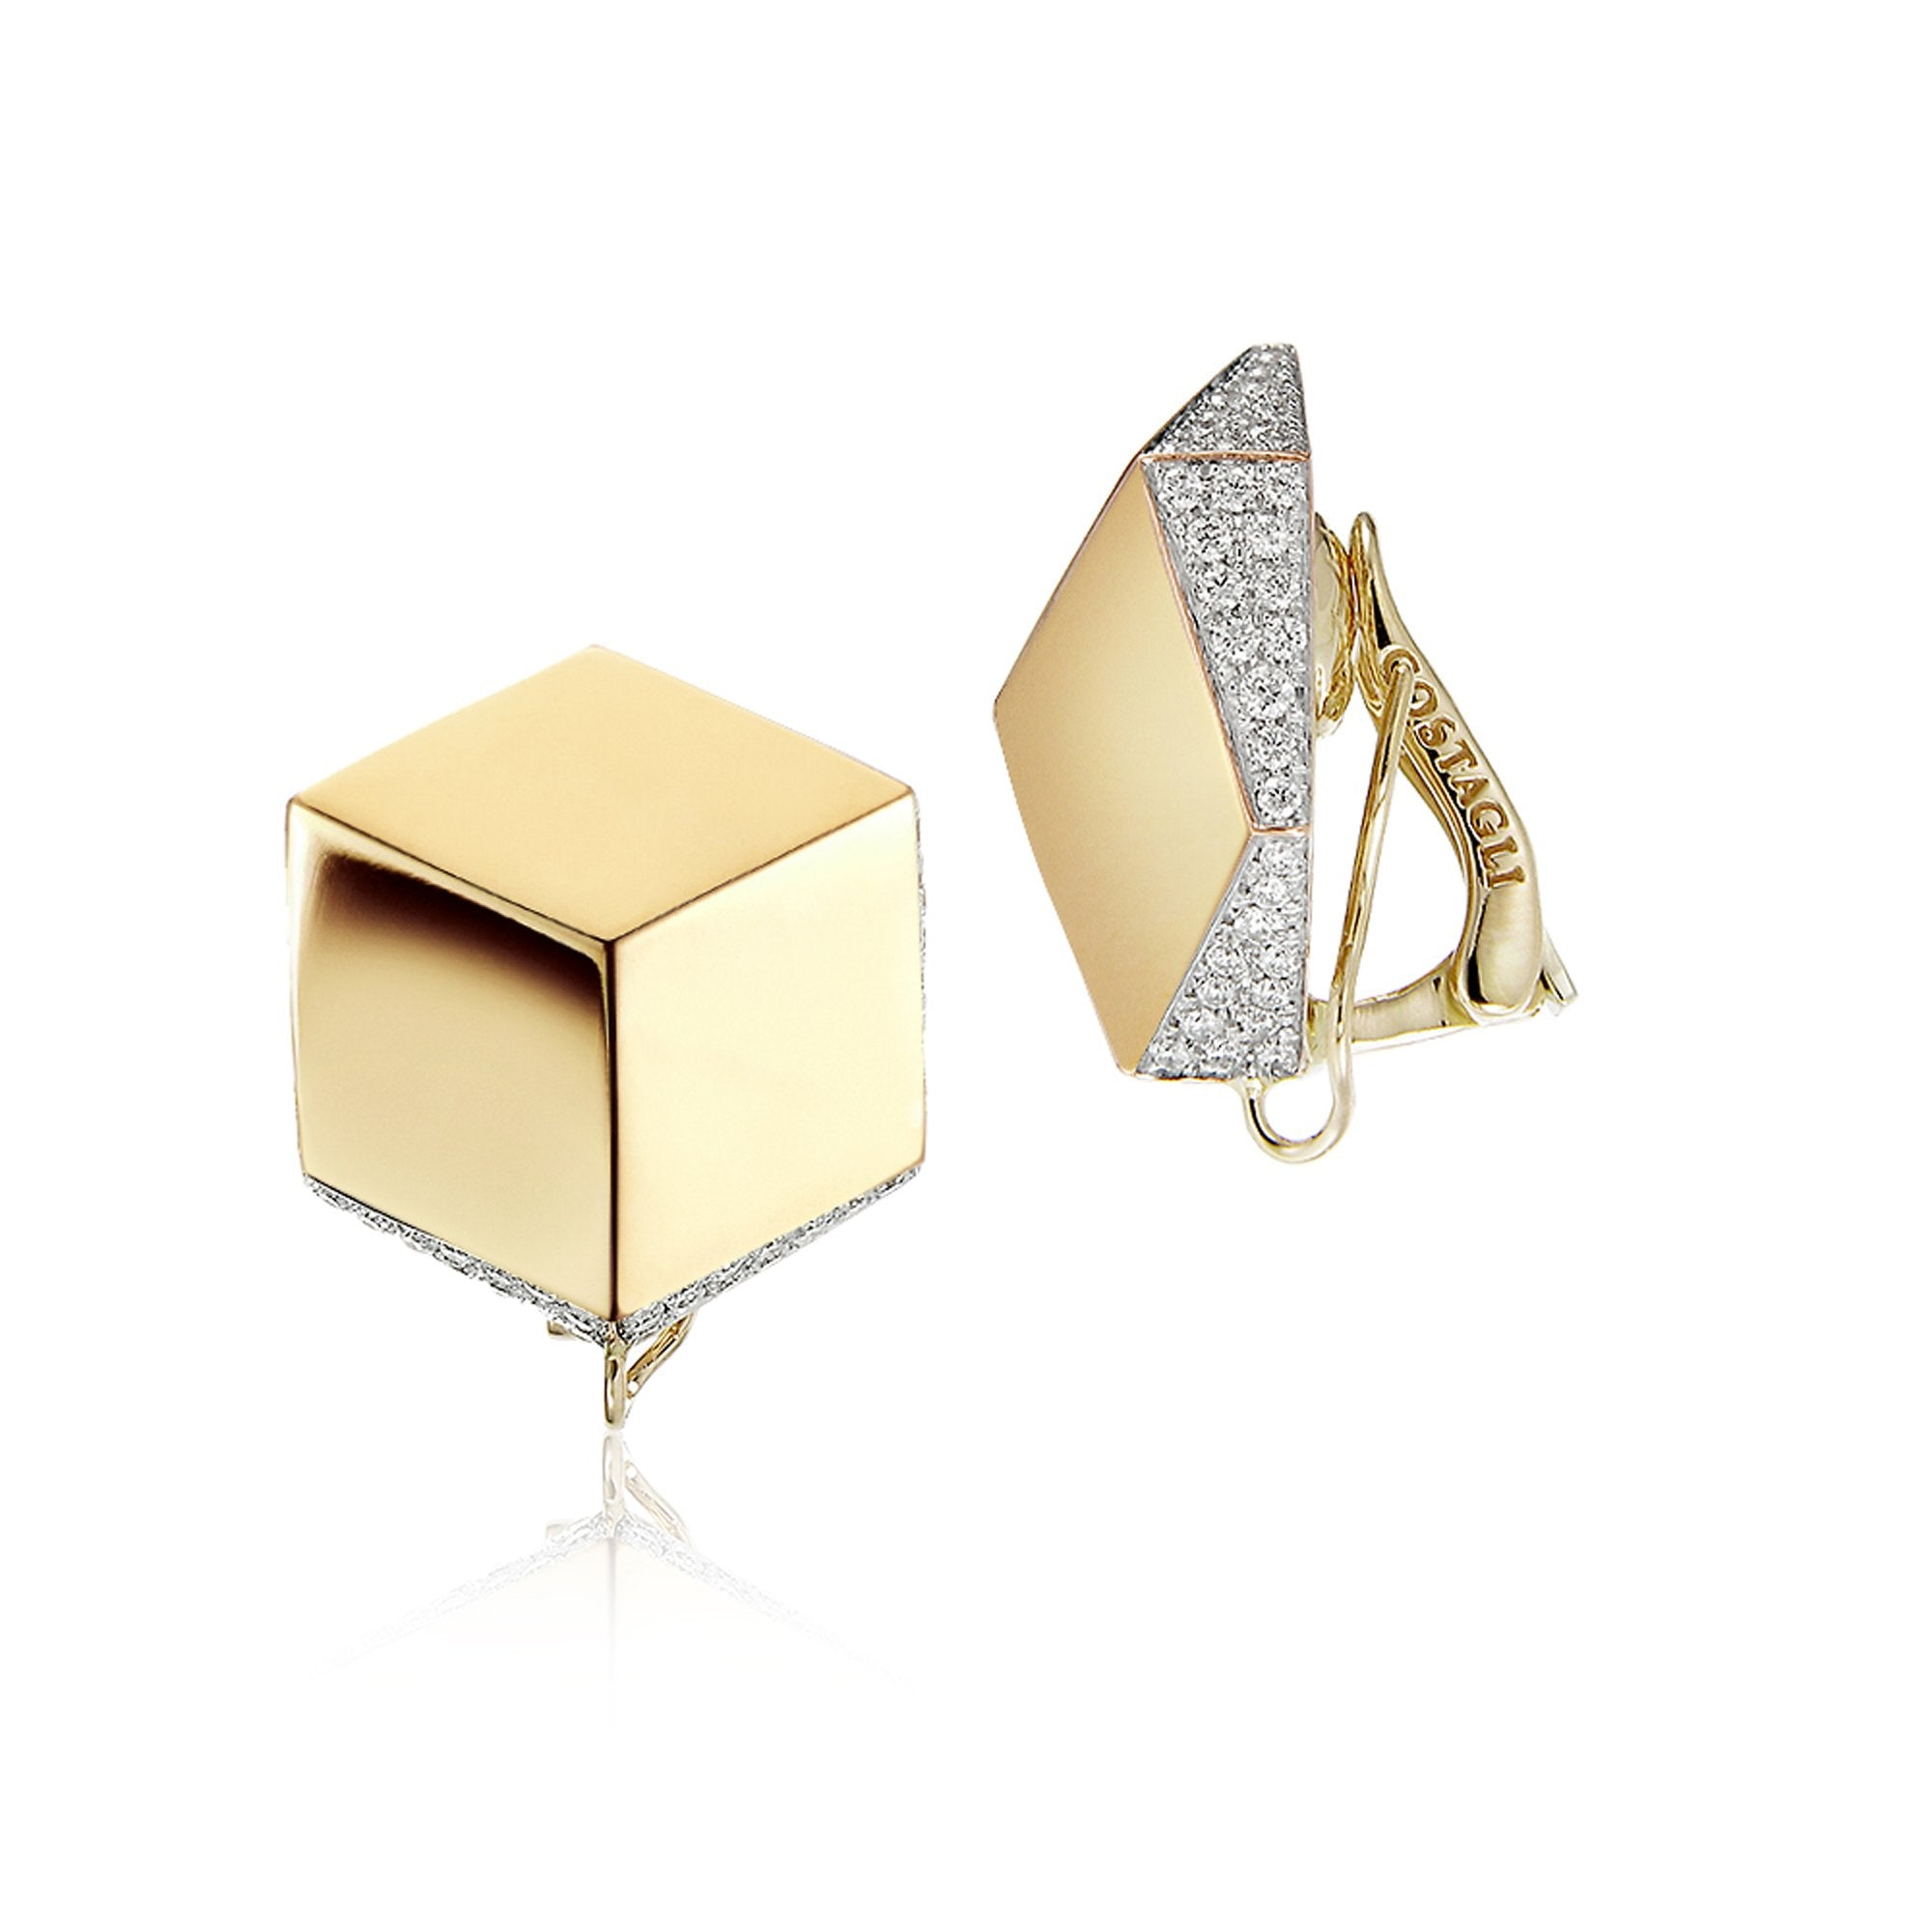 Yellow Gold and Diamond 'Brillante®' Clip Earrings - Paolo Costagli - 1